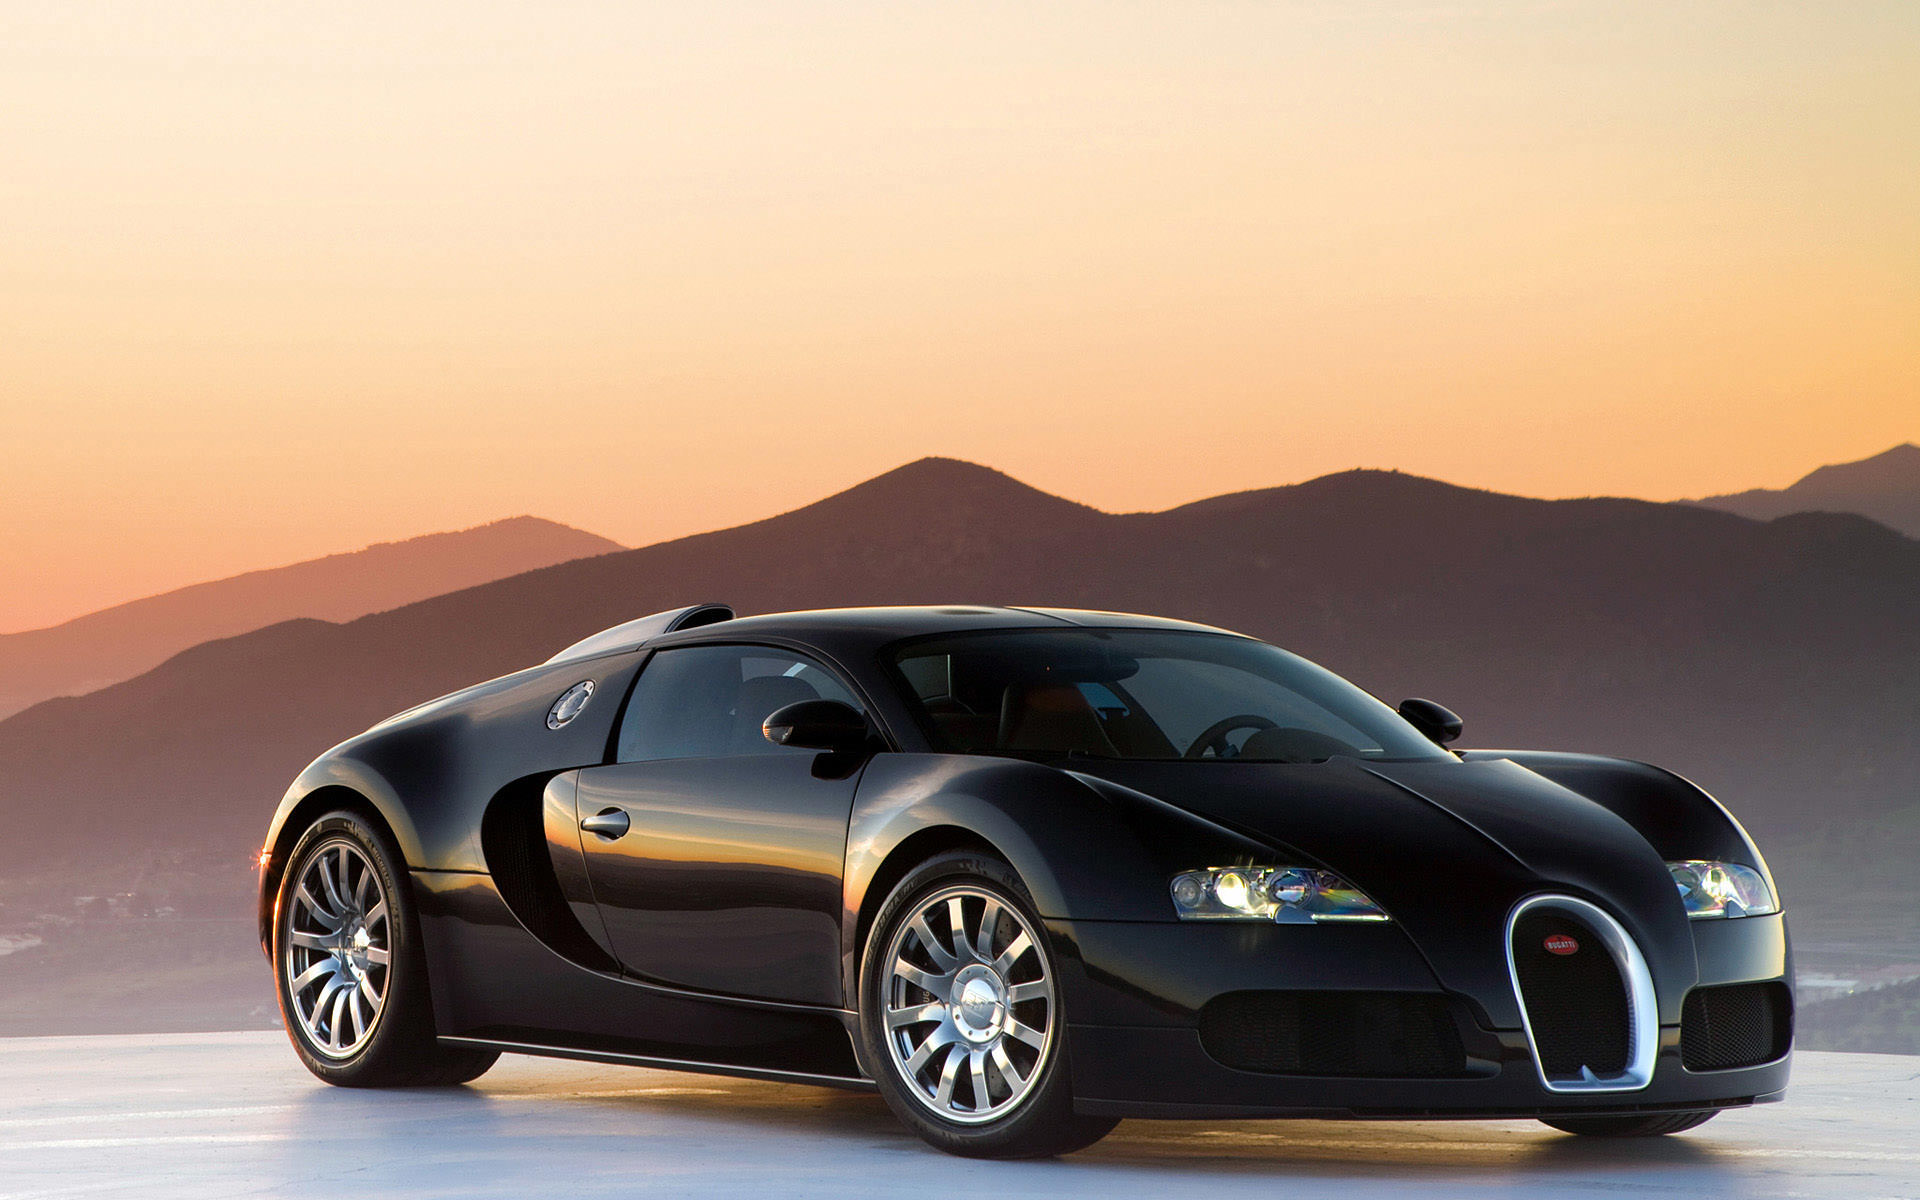 Black Bugatti Veyron Hd Wallpapers Top Free Black Bugatti Veyron Hd Backgrounds Wallpaperaccess